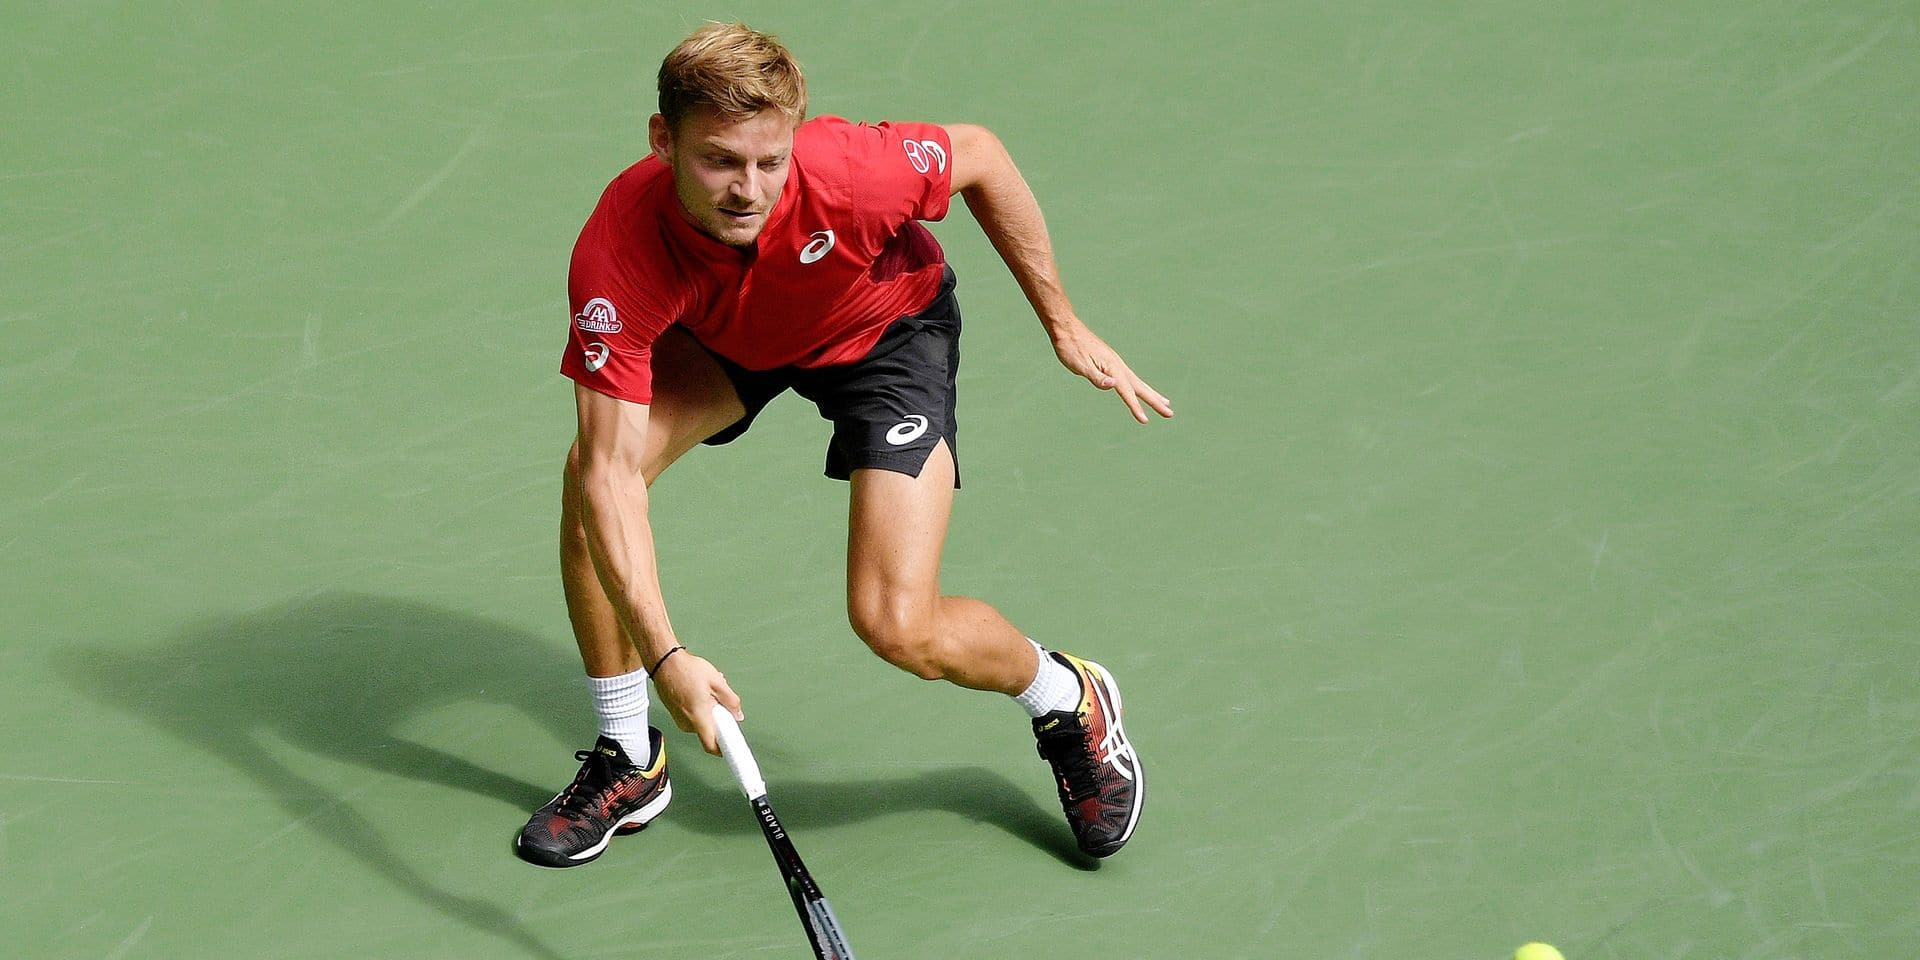 Belgian David Goffin pictured in action during a tennis match between Belgian David Goffin (ATP 15) and Swiss Roger Federer (ATP 3), in the fourth round of the Men's Singles of the US Open Grand Slam tennis tournament, at Flushing Meadow, in New York City, USA, Sunday 01 September 2019. BELGA PHOTO YORICK JANSENS